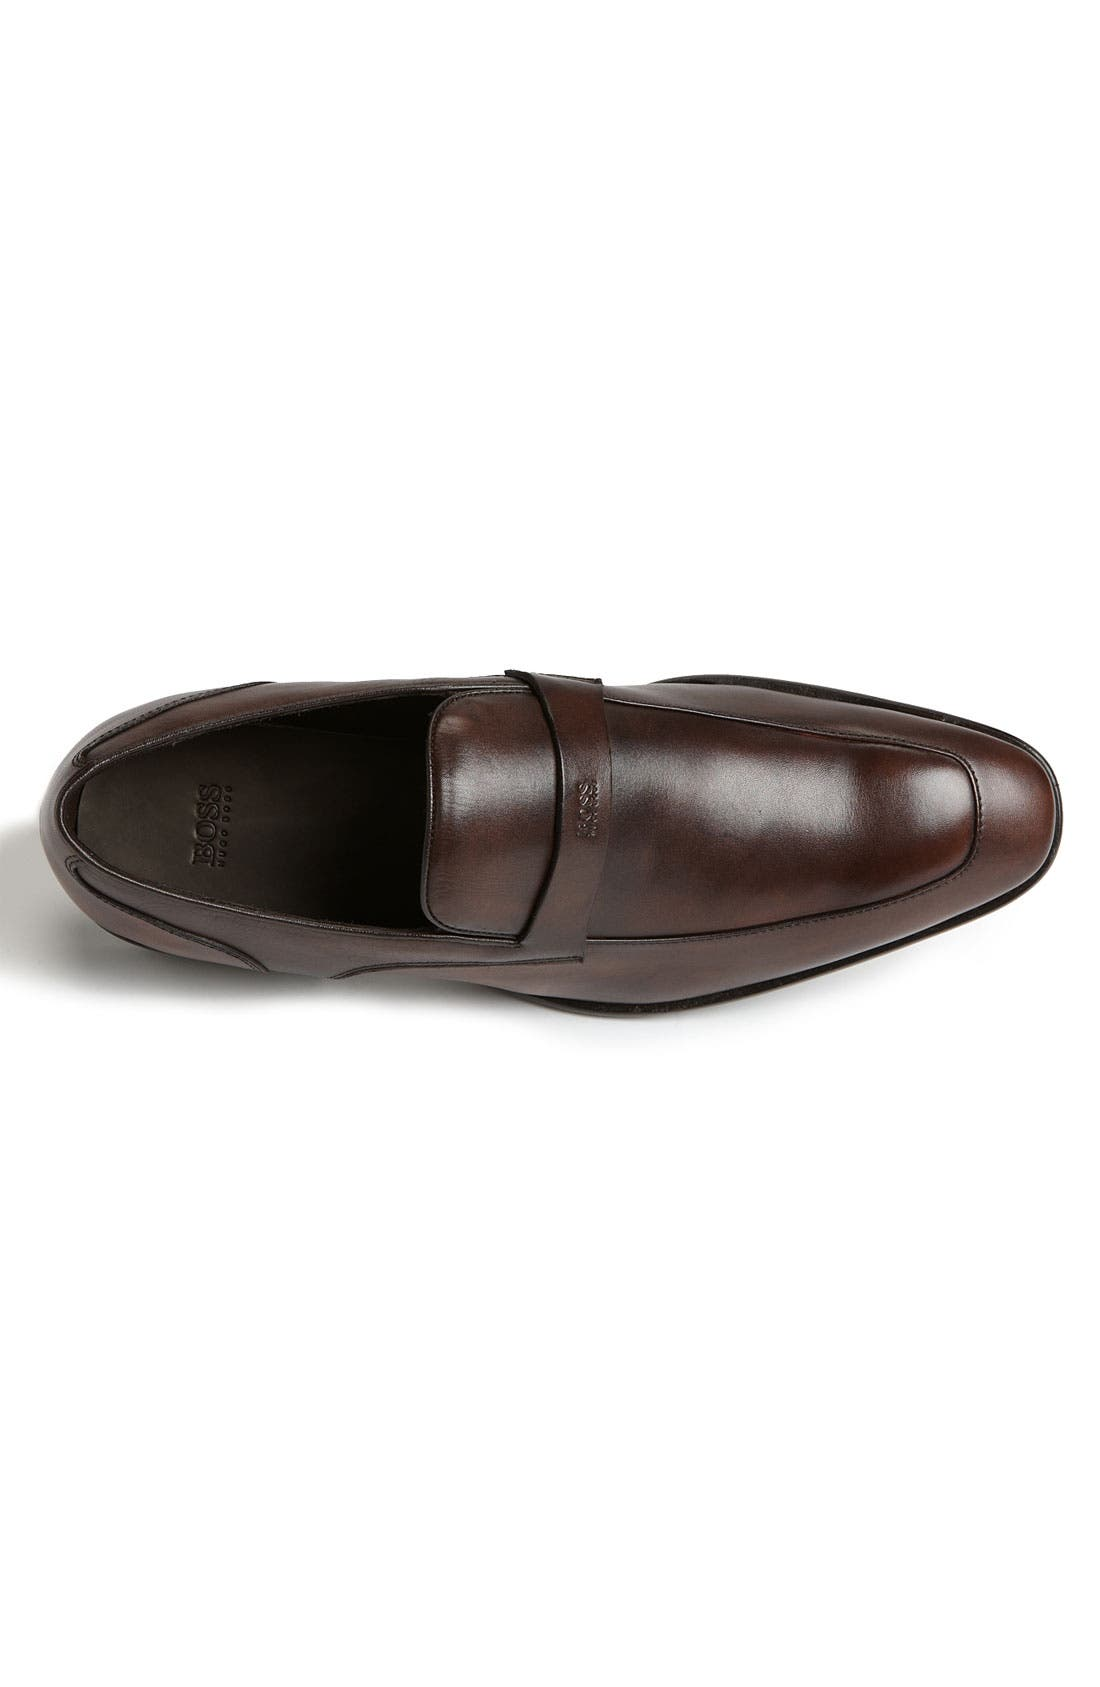 Alternate Image 3  - BOSS HUGO BOSS 'Metero' Loafer